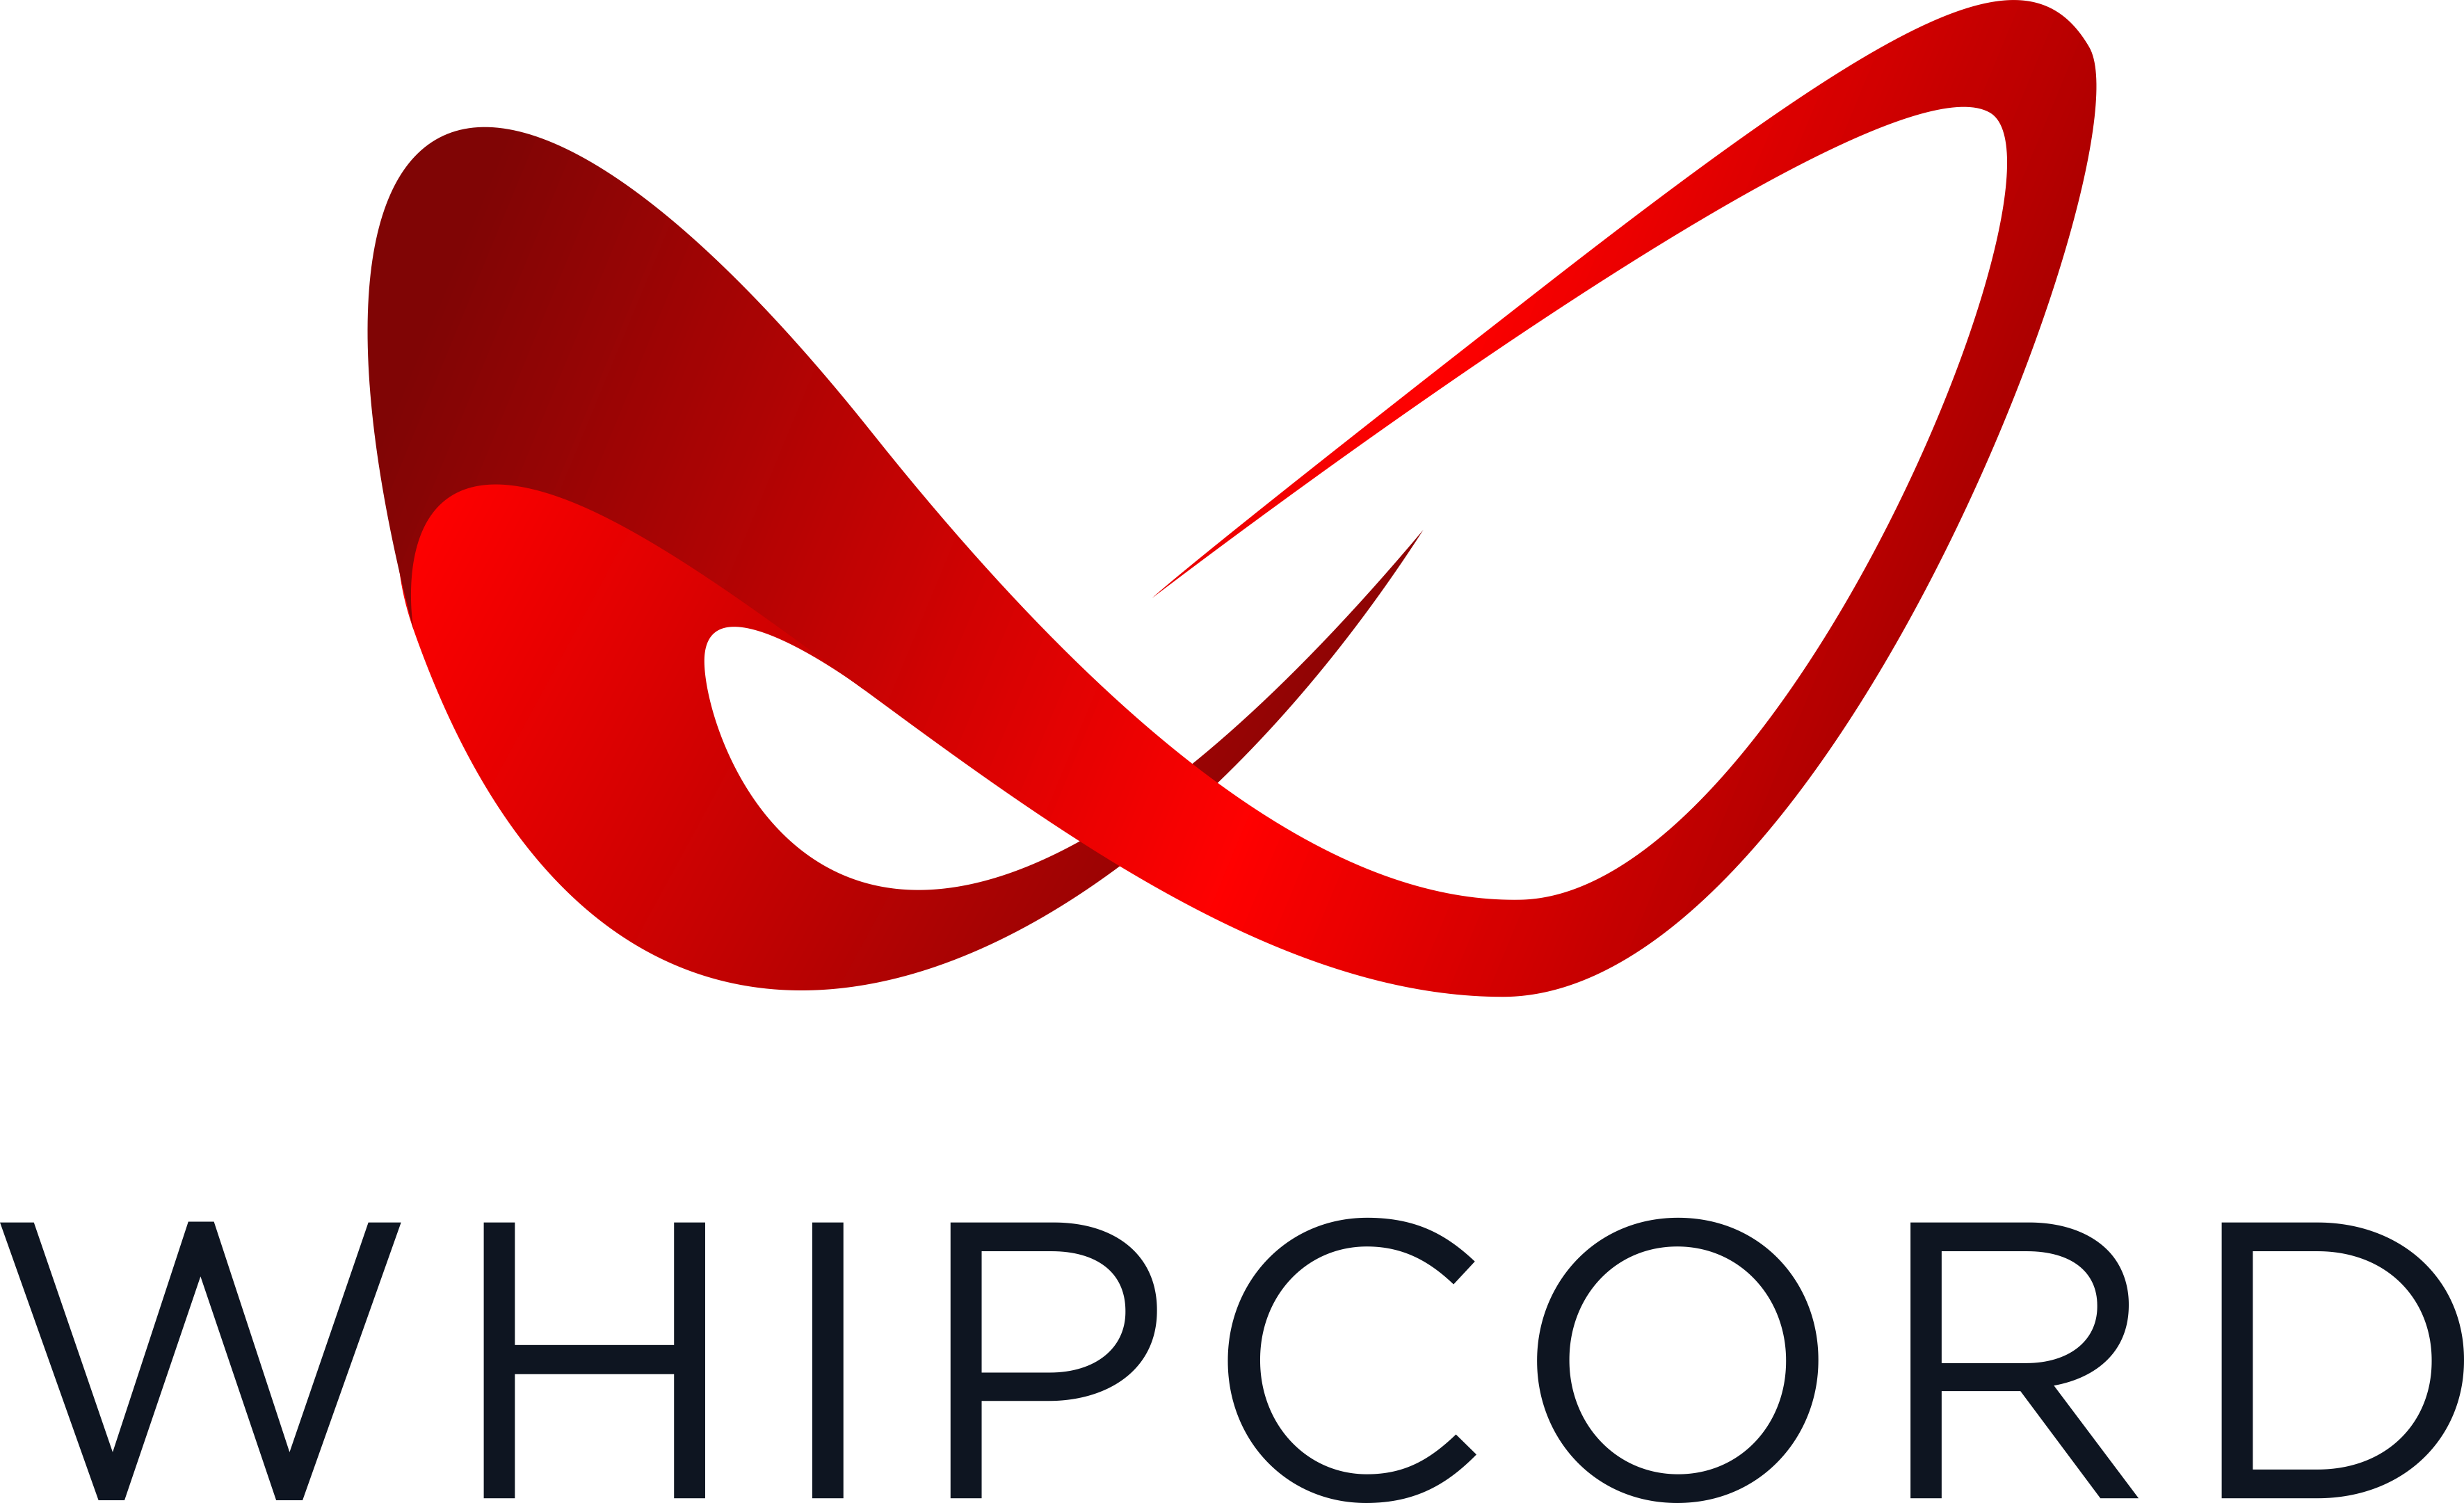 Whipcord - PNG